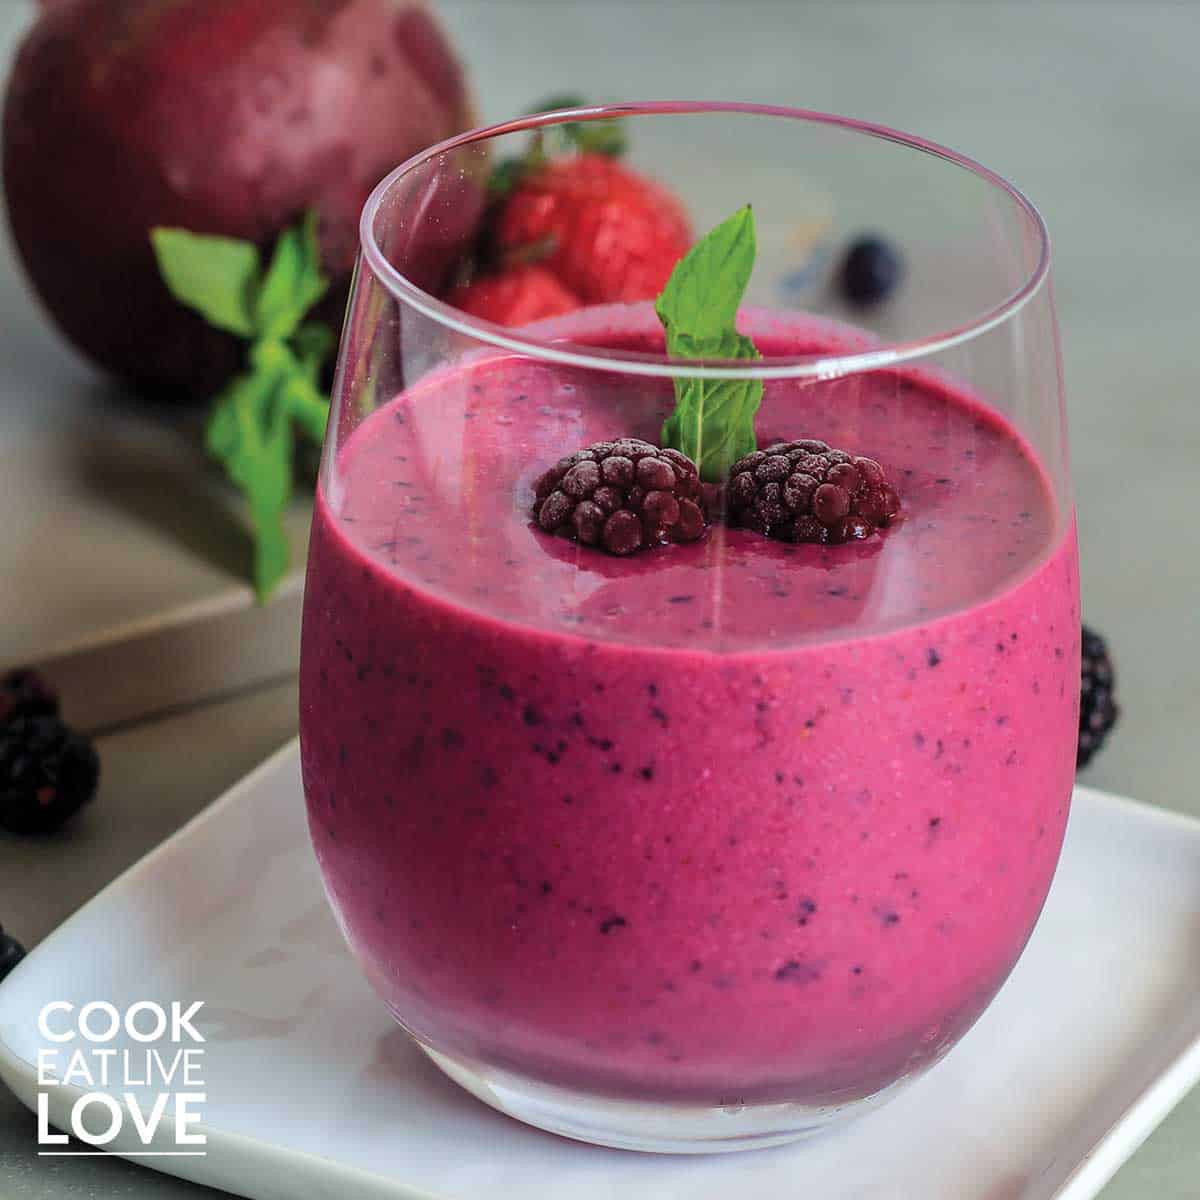 Bright pink smoothie in glass topped with blueberries